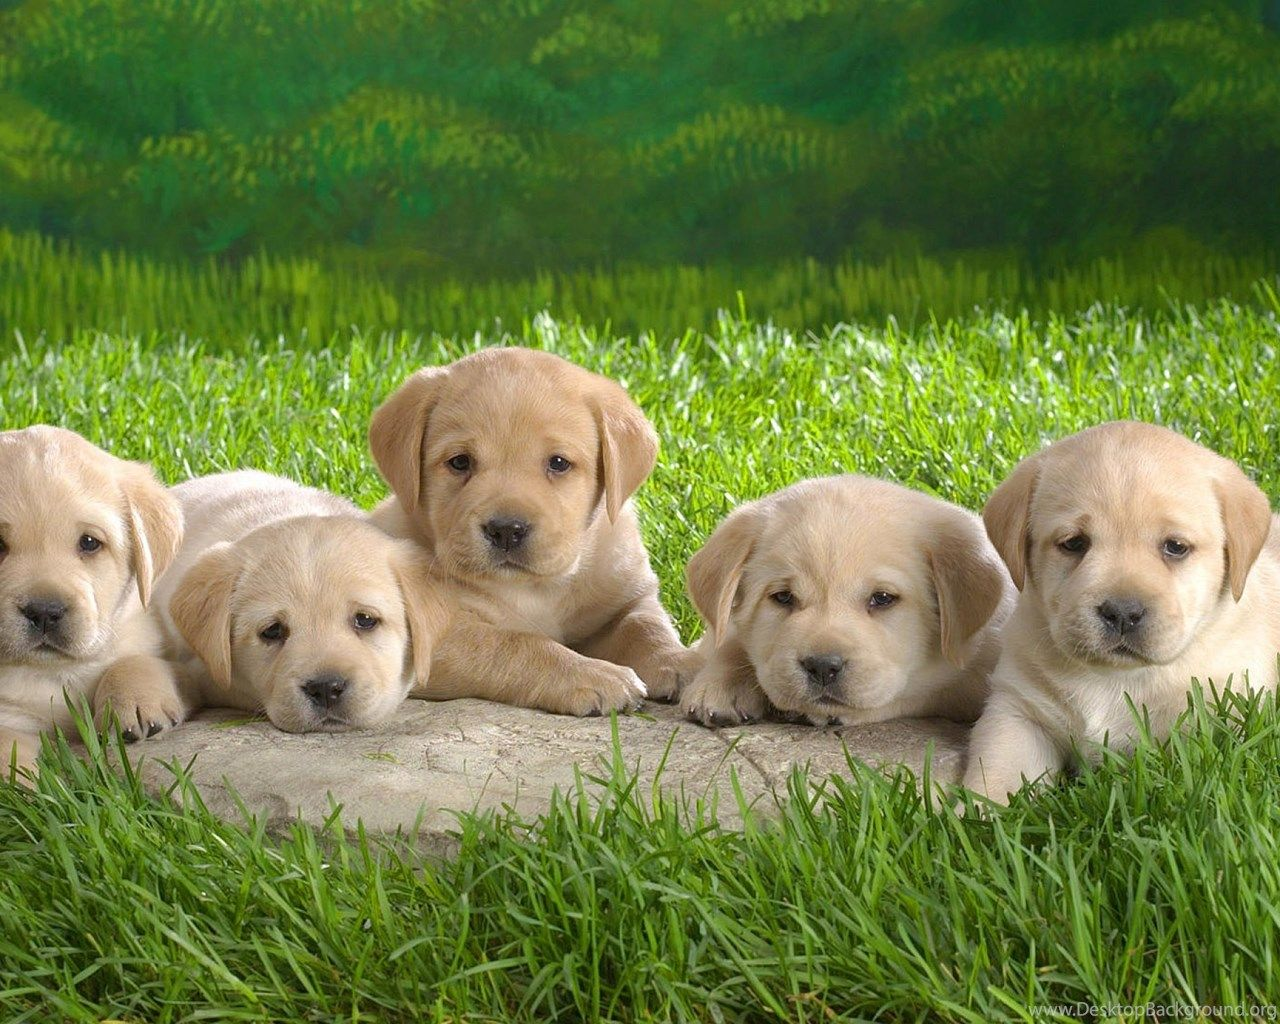 3d Puppy Wallpaper - Fondo de pantalla de Puppies para escritorio (# 118699) - HD